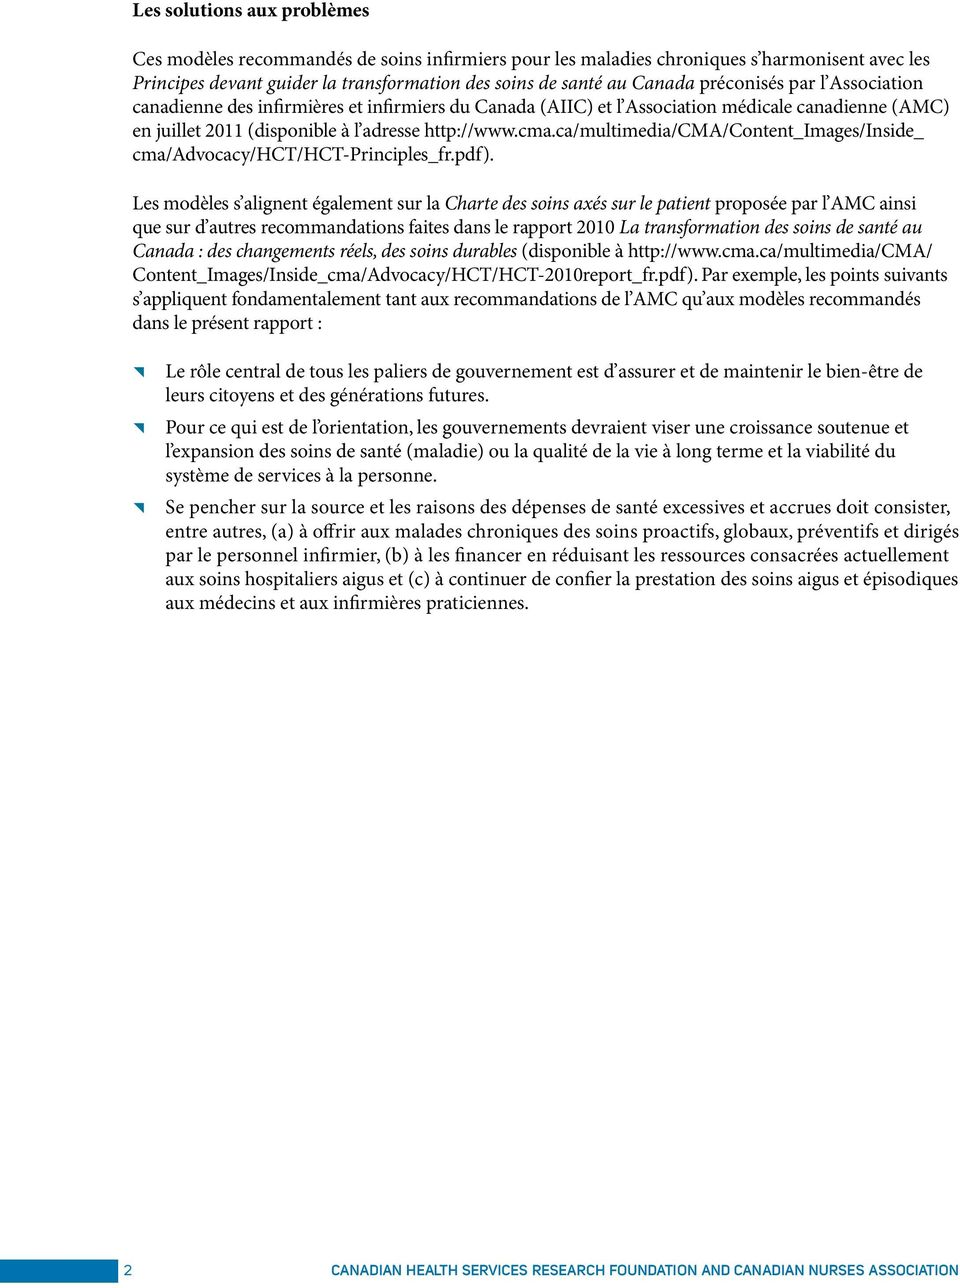 ca/multimedia/cma/content_images/inside_ cma/advocacy/hct/hct-principles_fr.pdf).